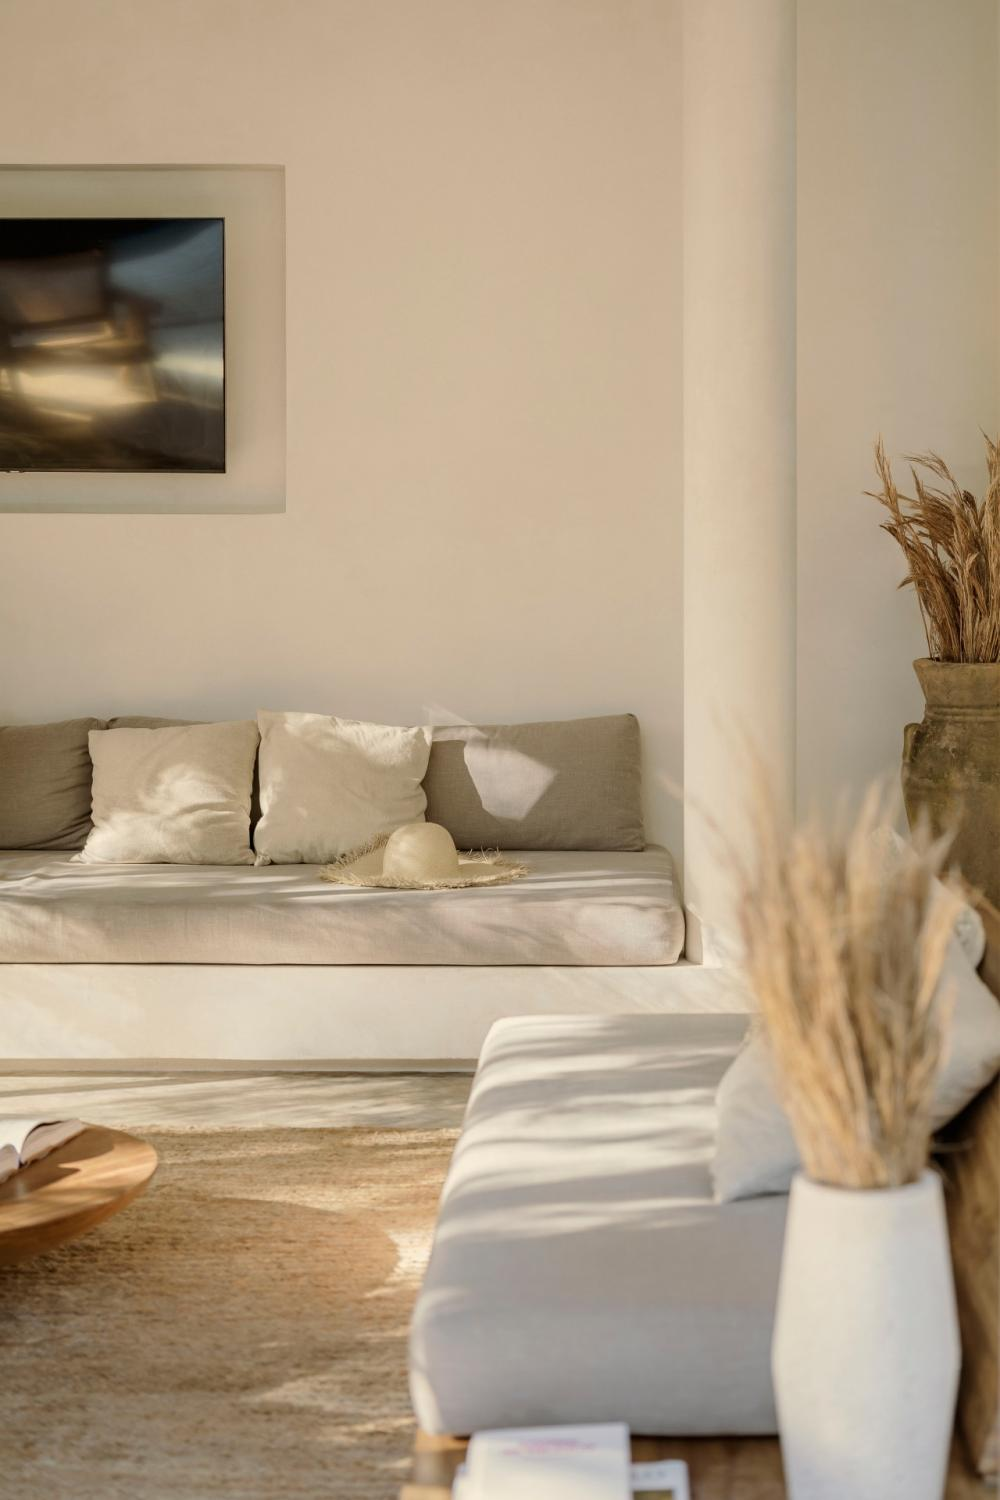 House tour: a peaceful, tropical holiday home in the trendy Mexican beach town of Tulum-17.jpg